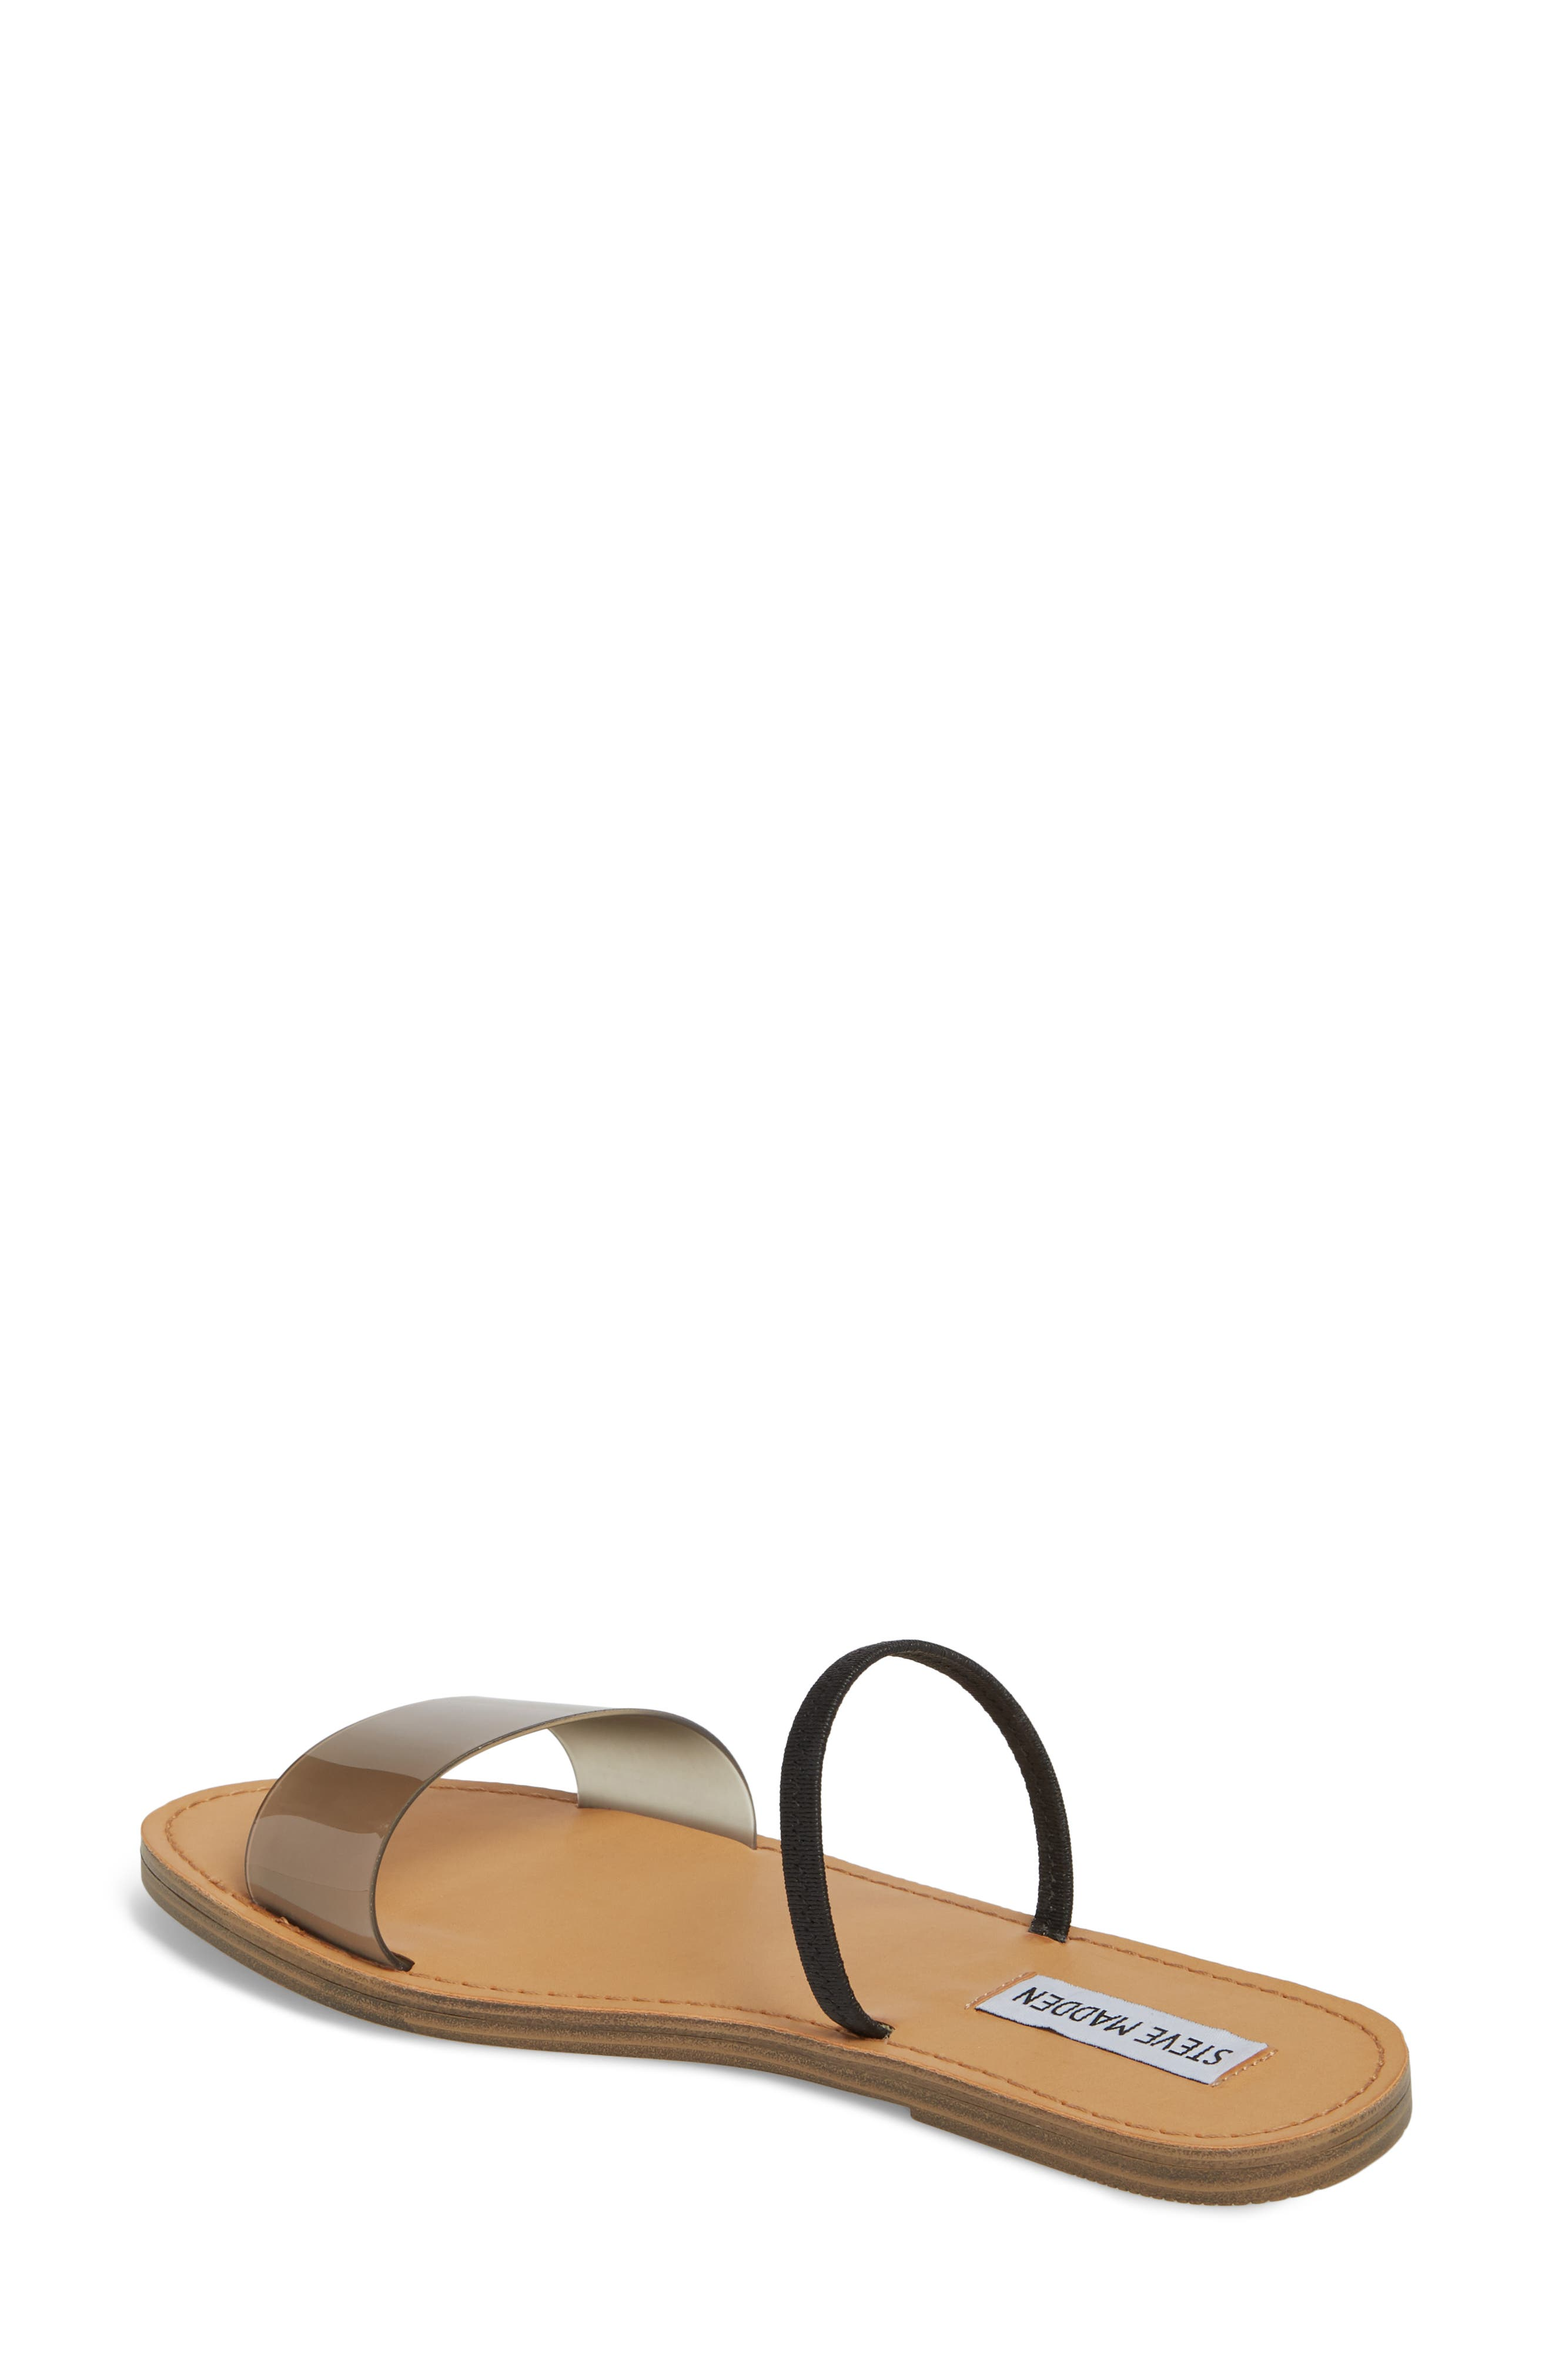 Dasha Strappy Slide Sandal,                             Alternate thumbnail 2, color,                             095